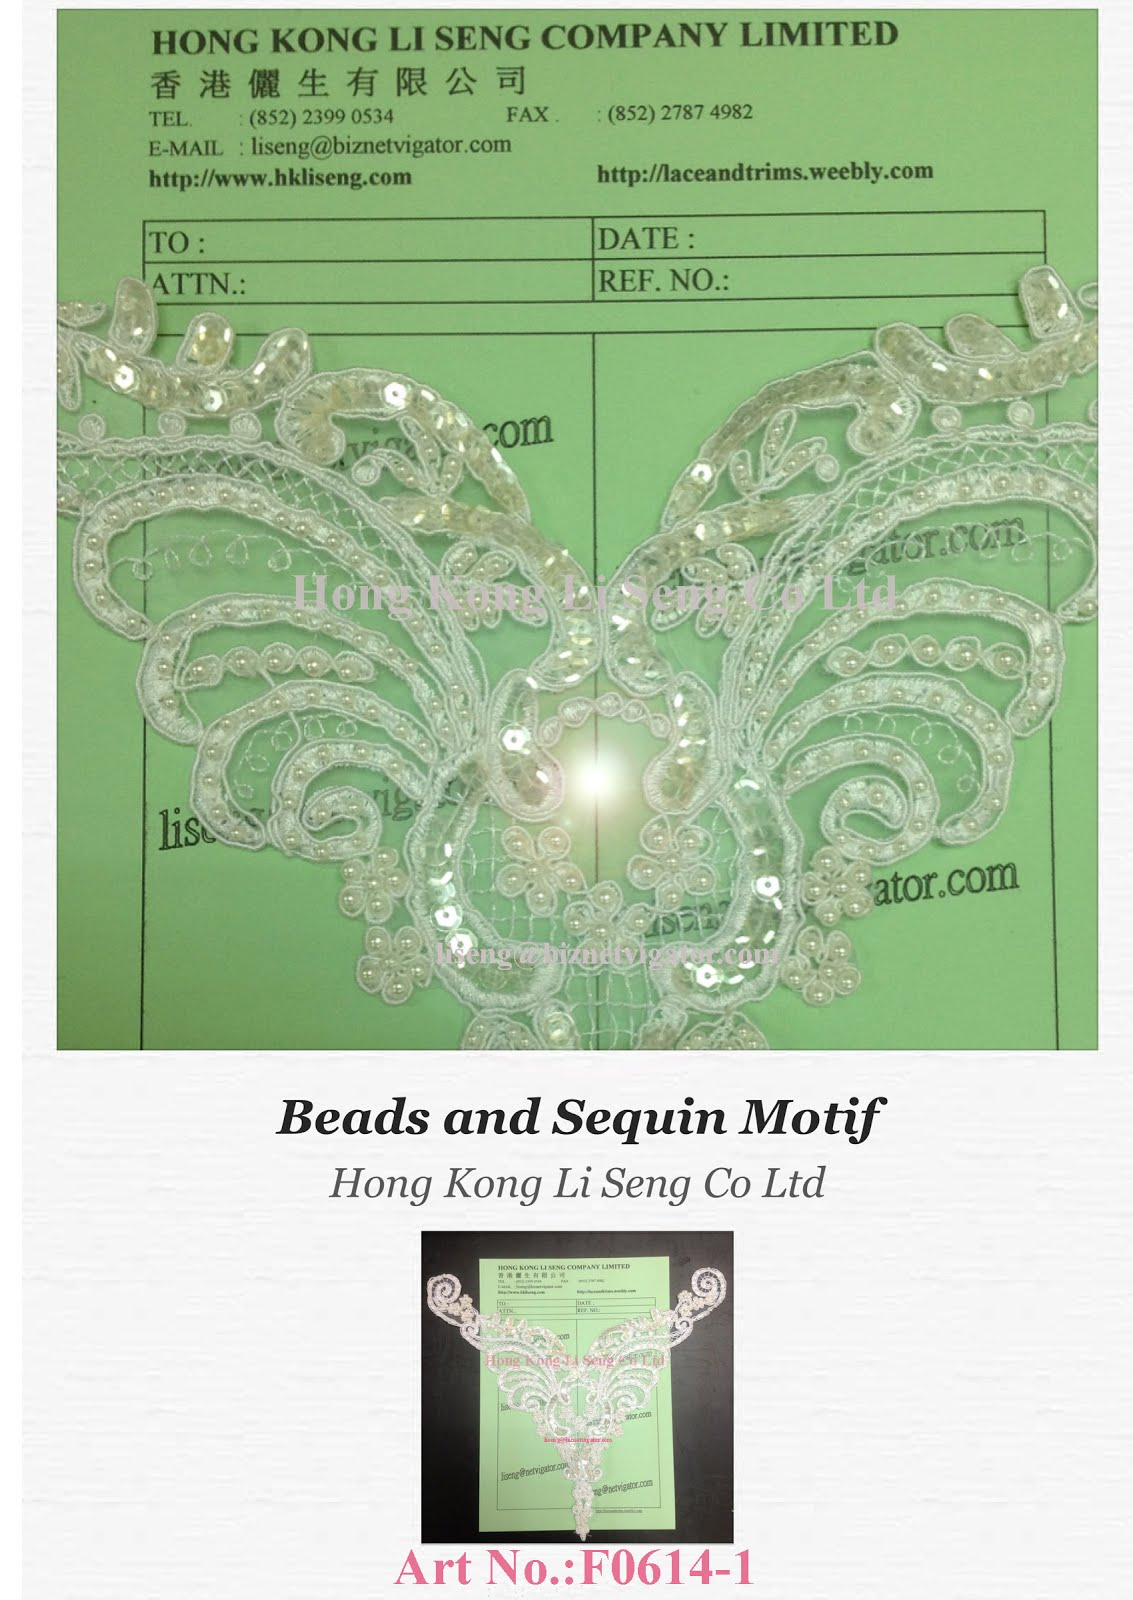 Major Supply Beads and Sequins Applique Manufacturer Wholesaler and Supplier